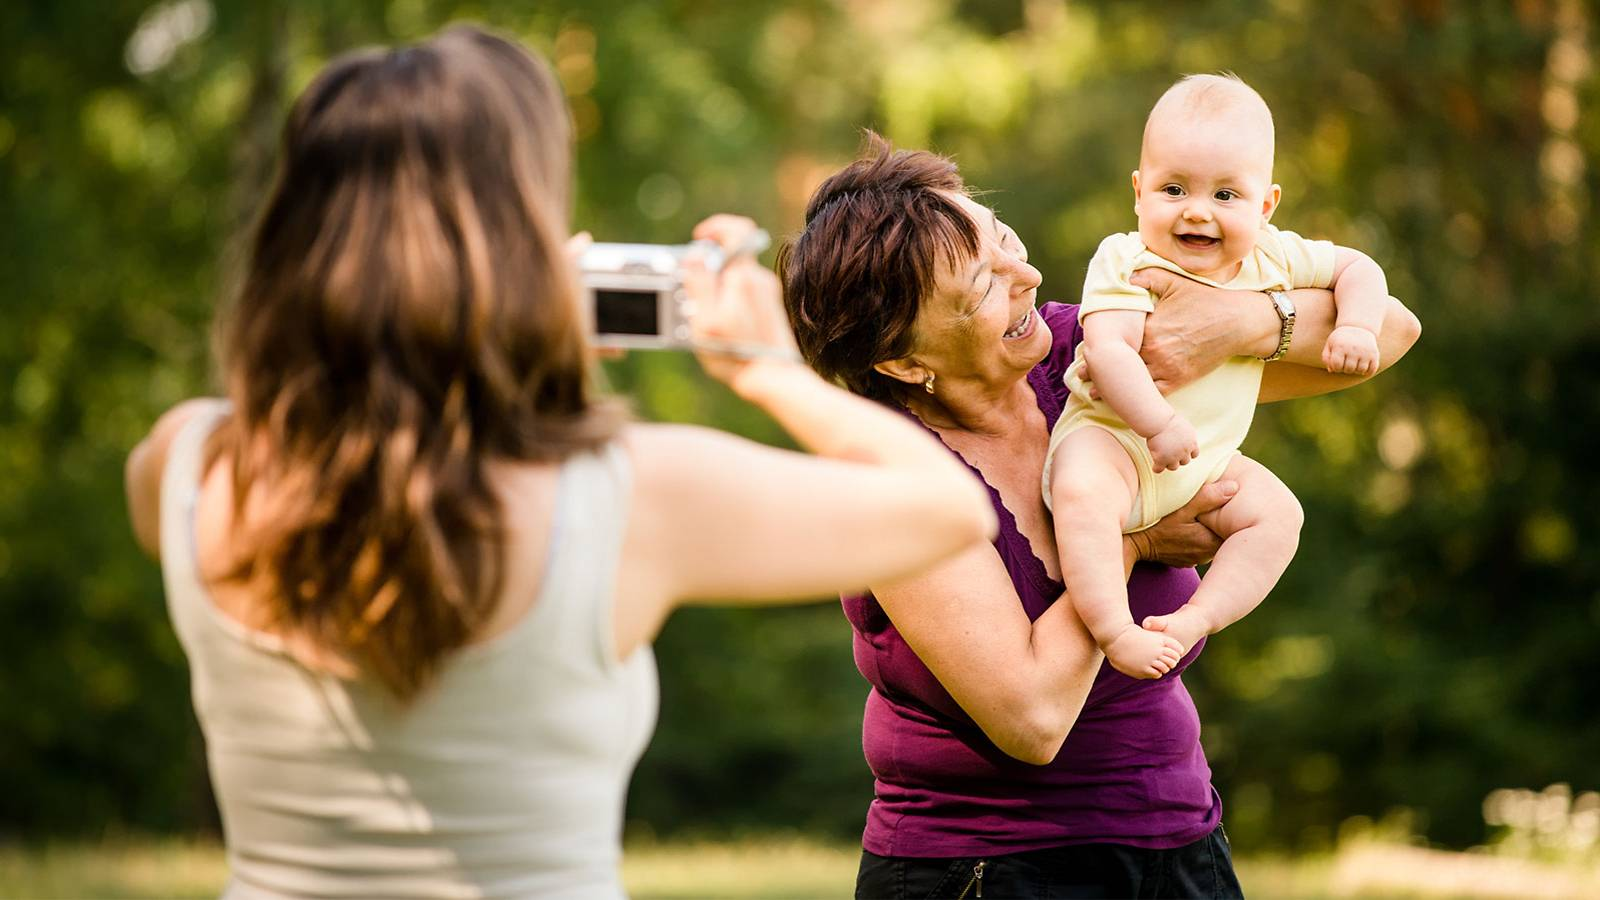 Babies-7-terrific-tips-for-capturing-perfect-shots-of-your-tot-[Infographic]-MAIN